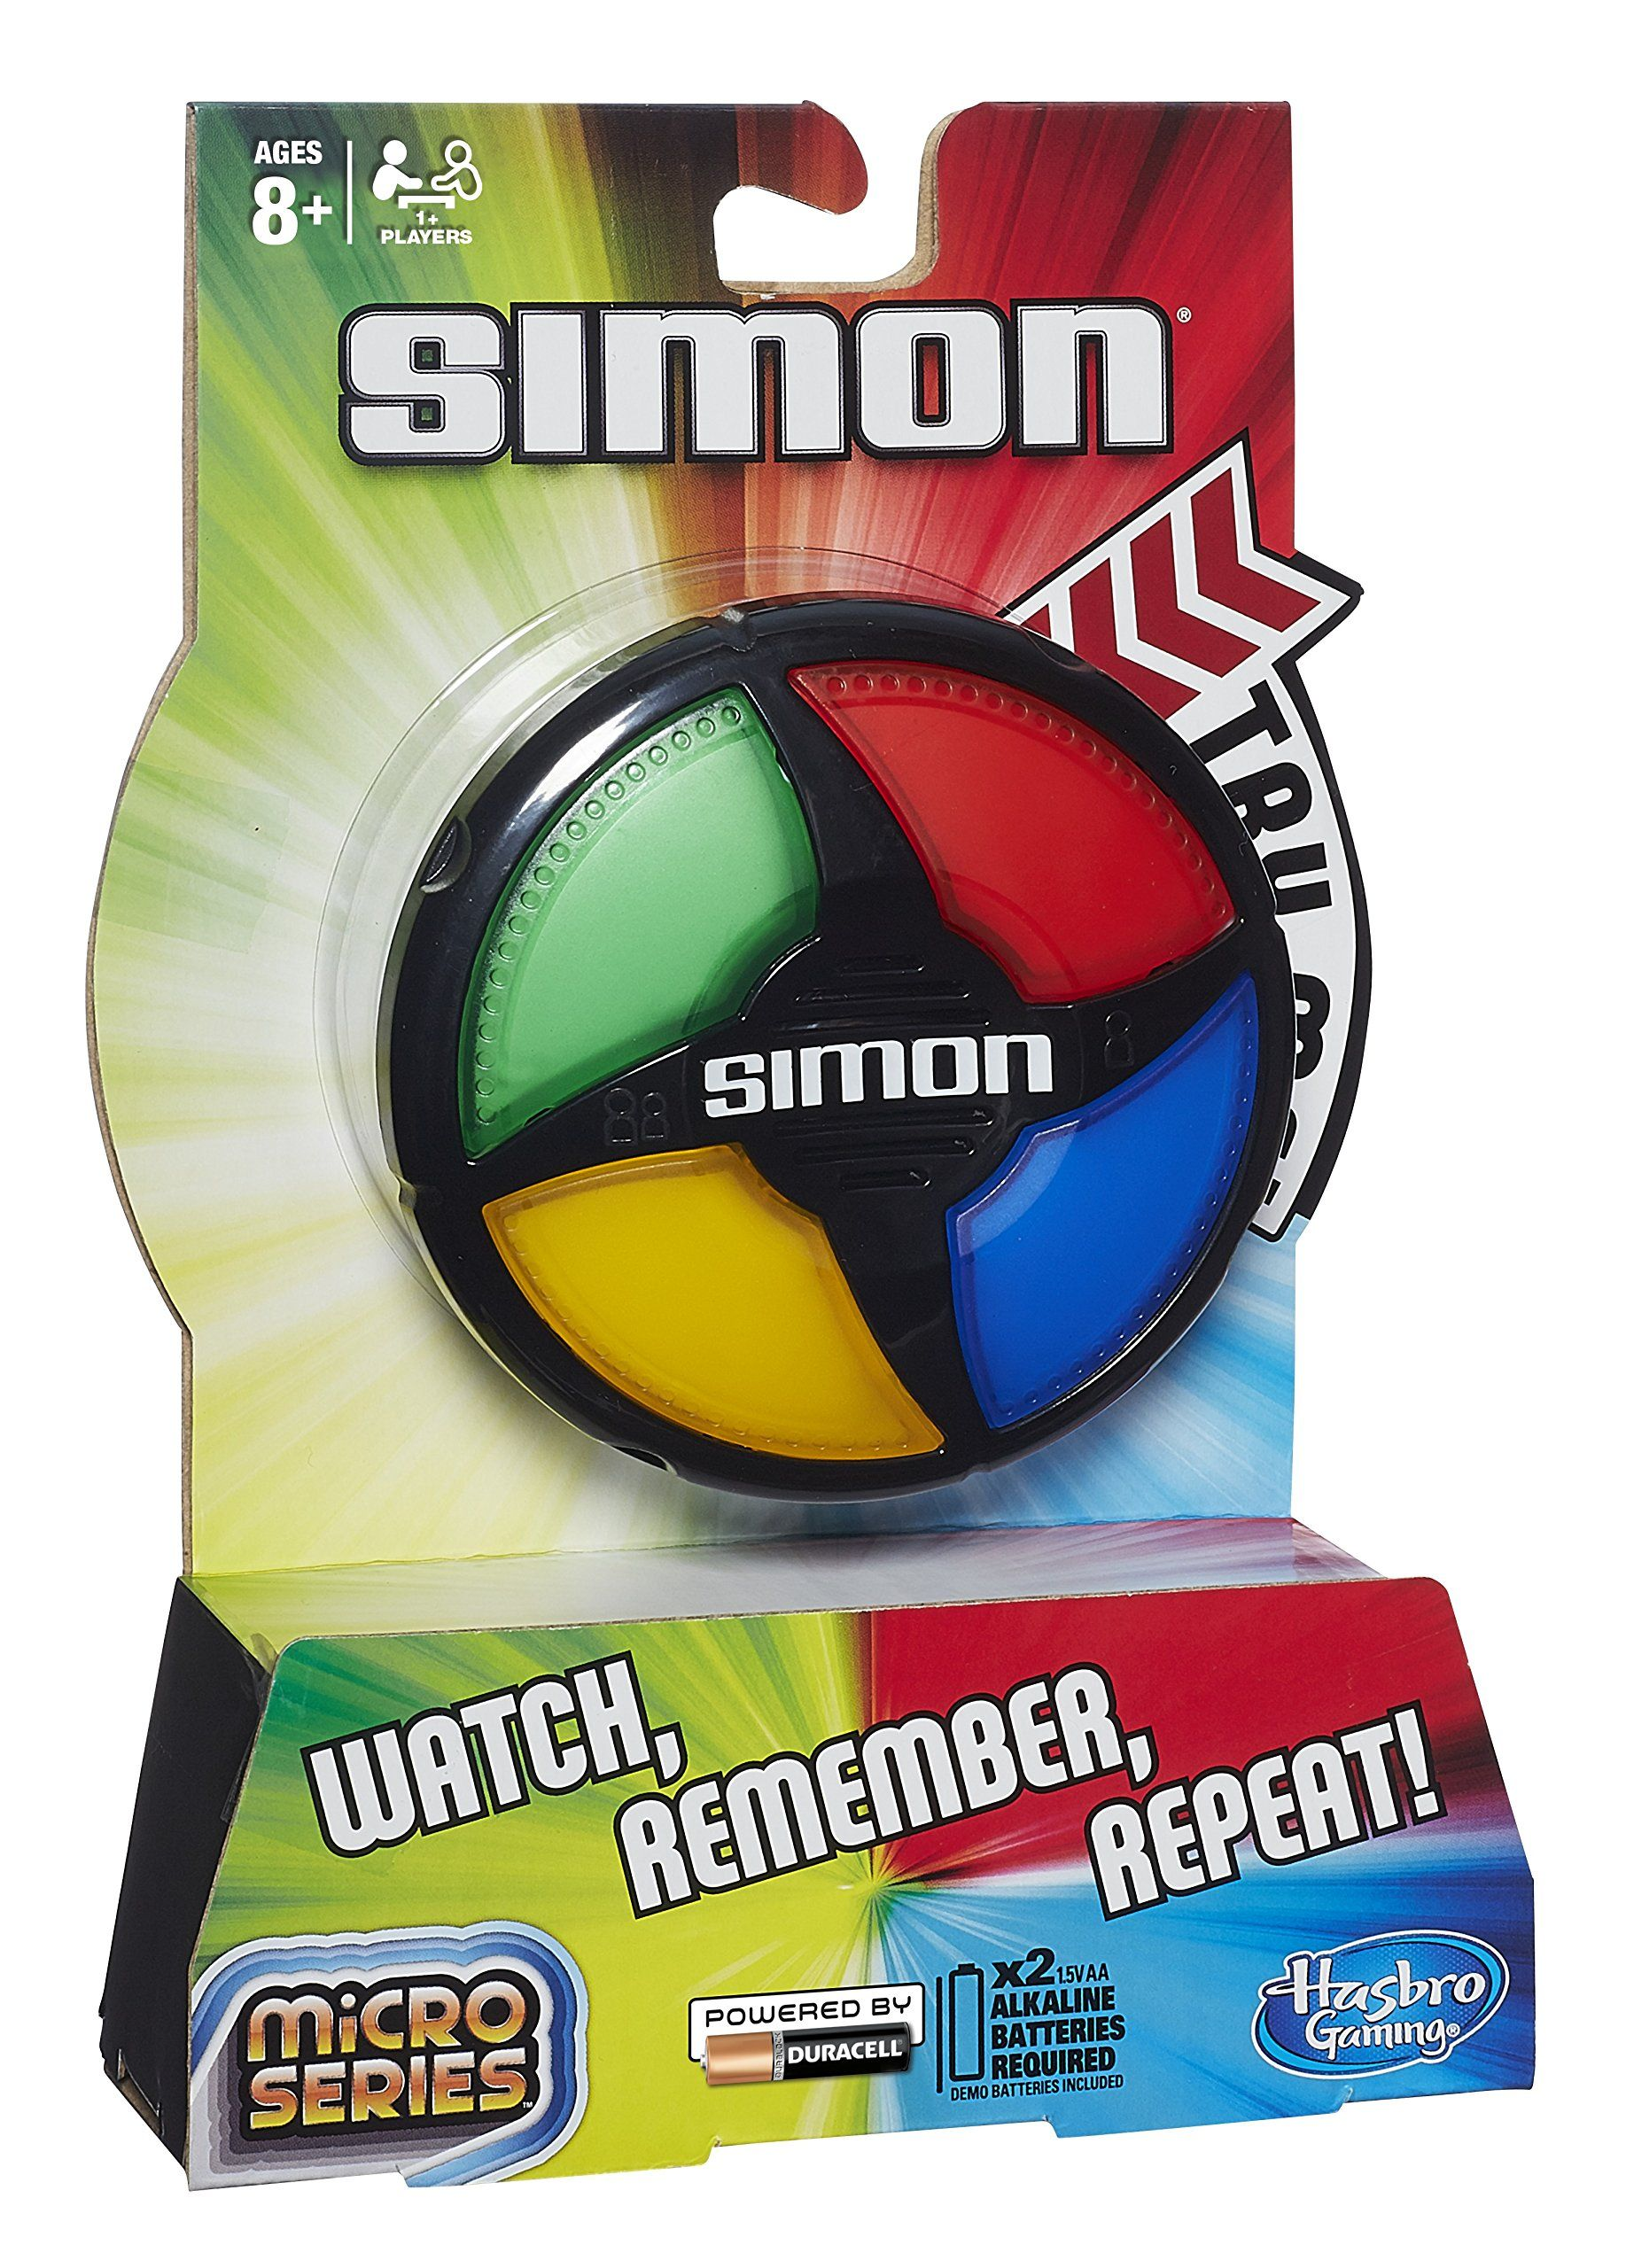 Hasbro Gaming Simon Micro Series Juego De Mesa B0640 Amazon Es